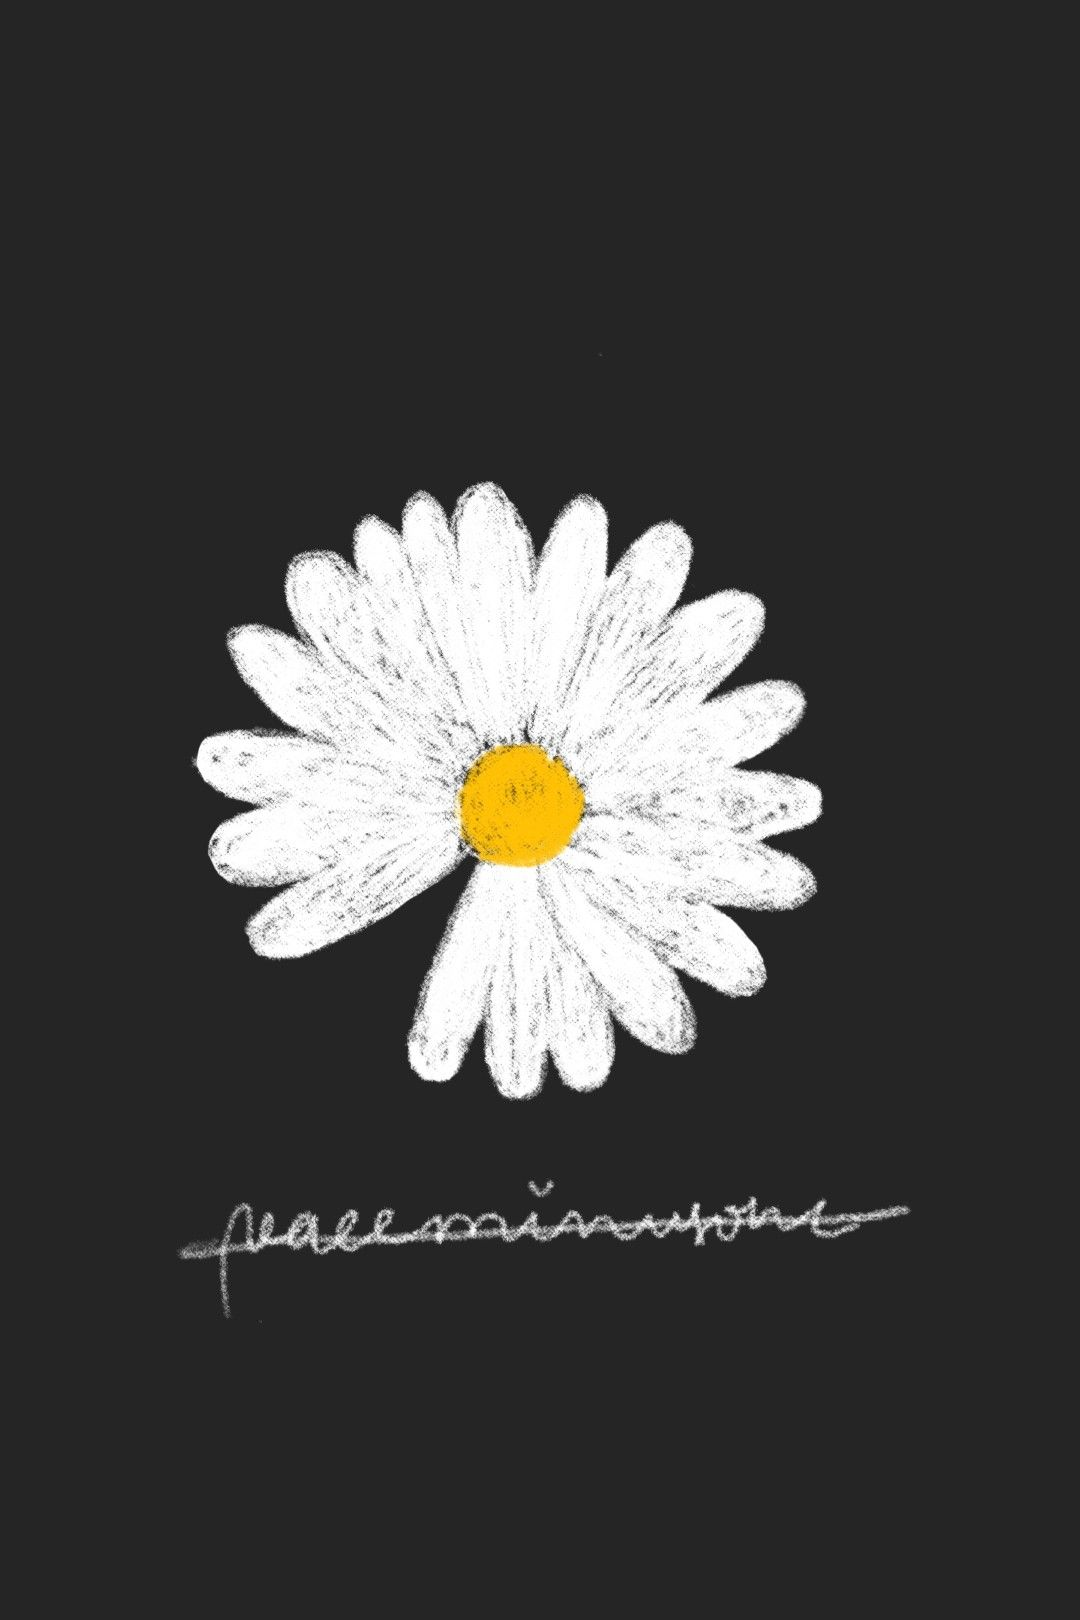 peaceminusone daisy flower gdragon wallpaper Bunga